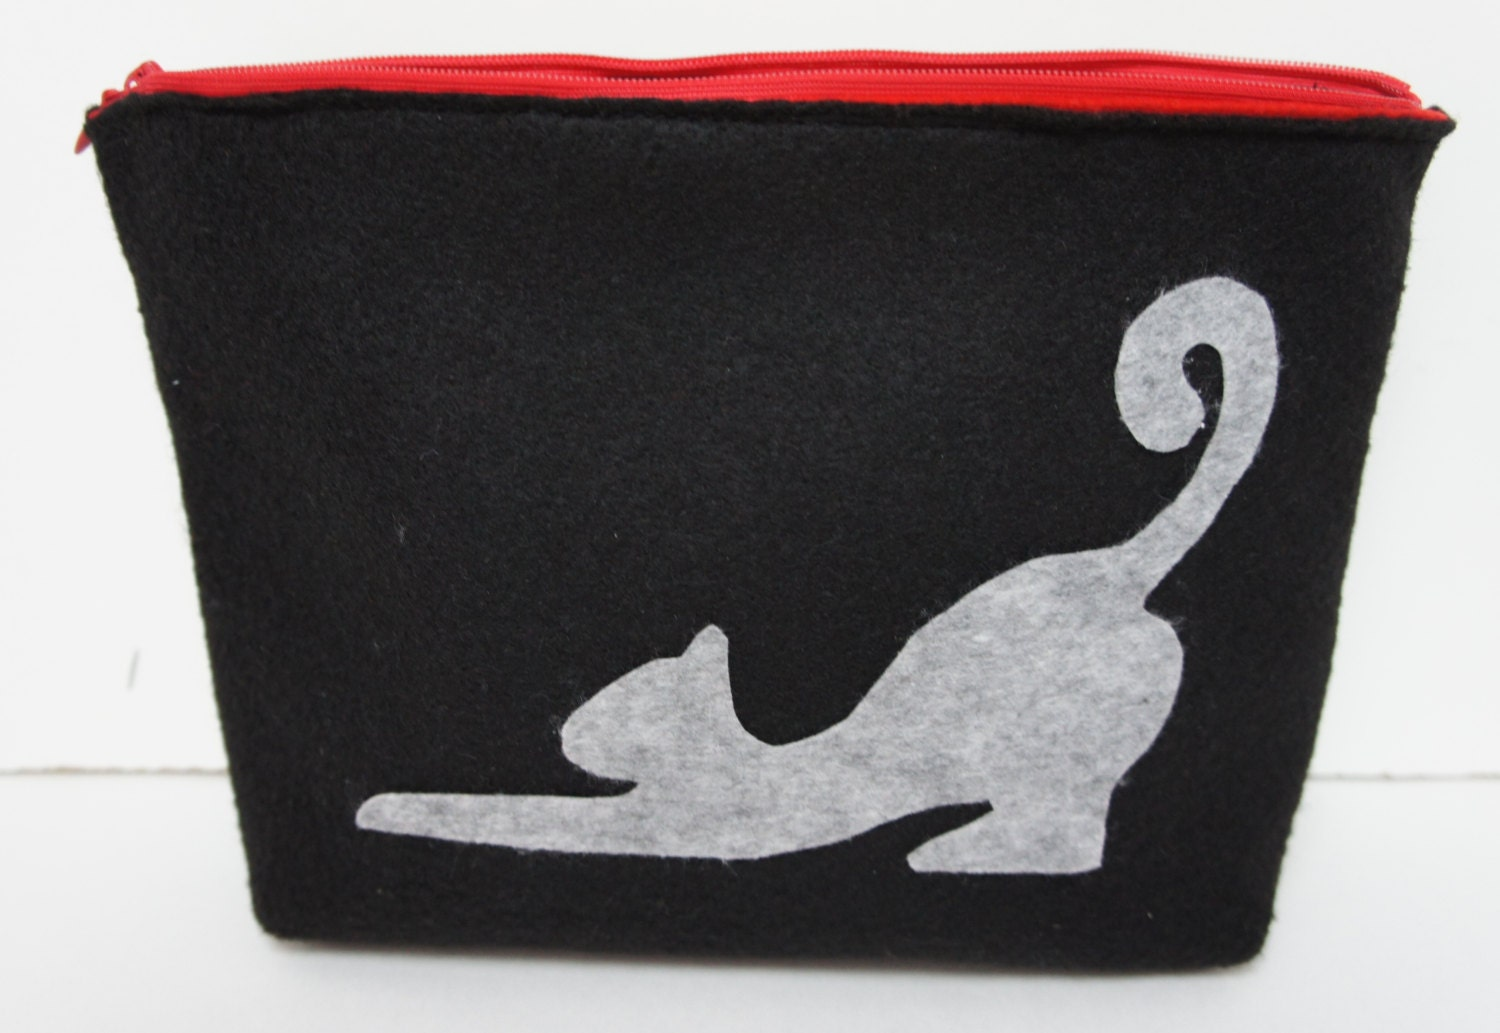 Felt Cosmetic Bag With Cat, Make Up Pouch, Clutch, Pencil Case, Zipper Purse, Travel Bag) - FeltMkr